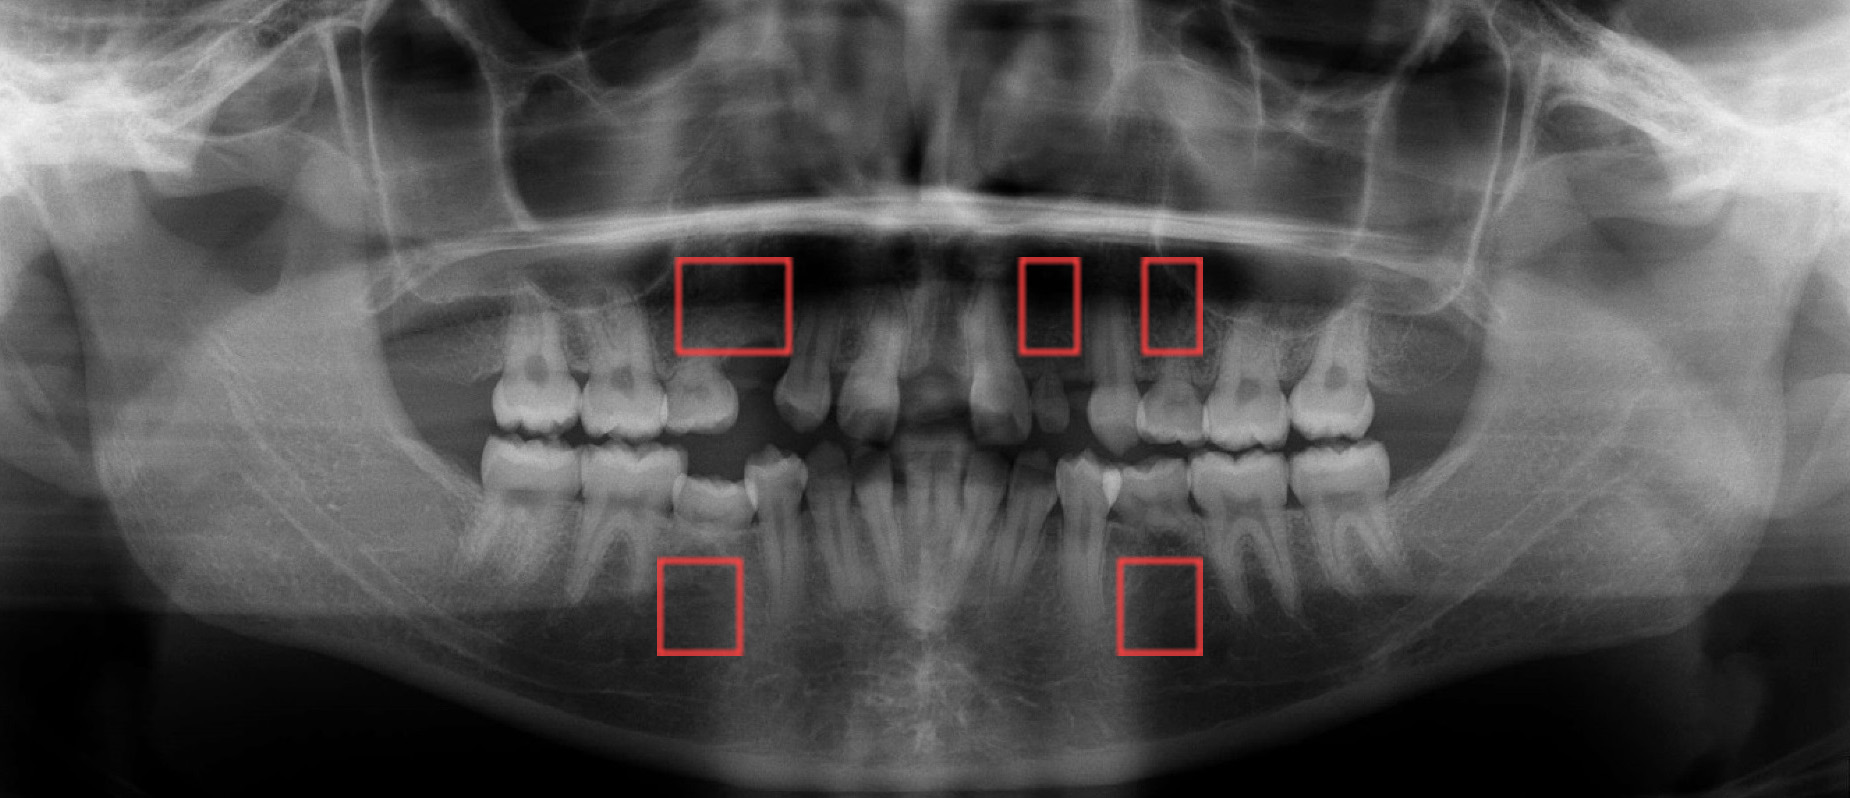 X-ray showing missing adult teeth image